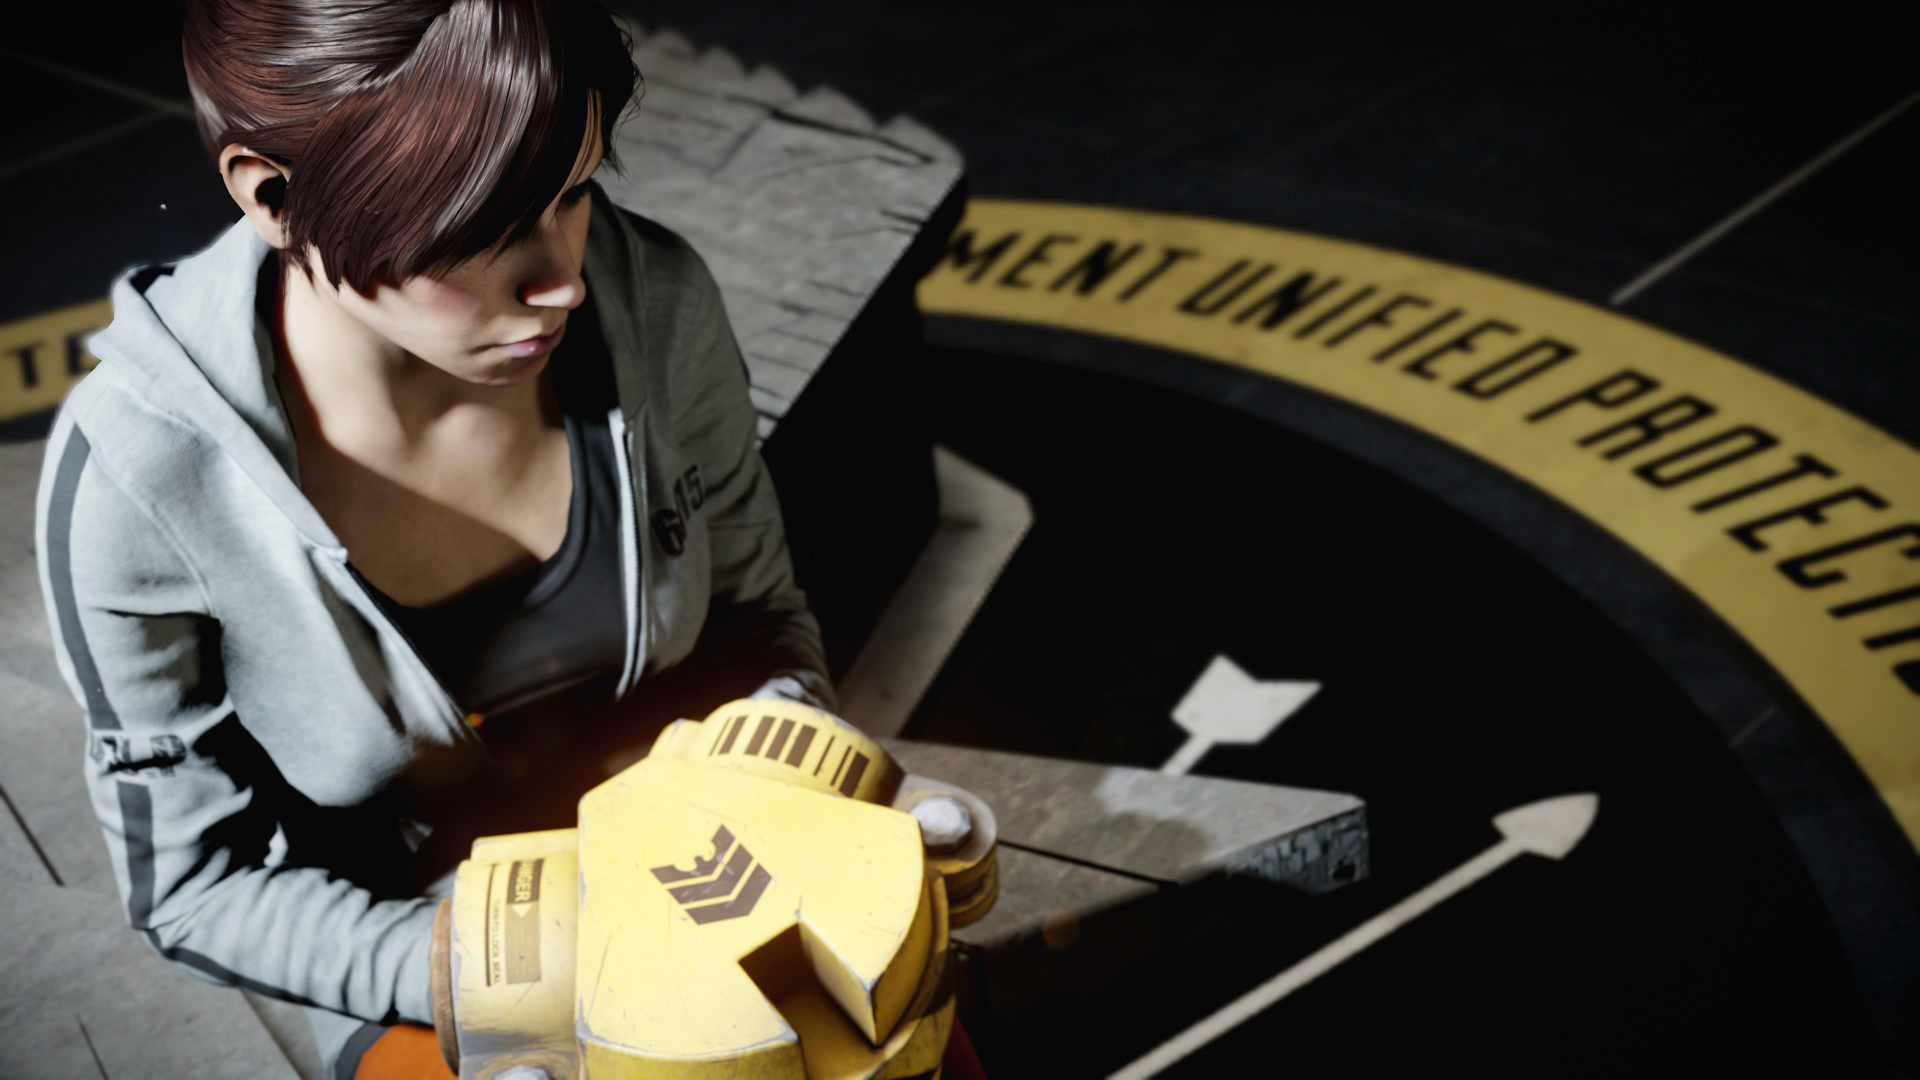 inFAMOUS_First_Light-Fetch_locked_up_1402372352.jpg - inFamous: Second Son